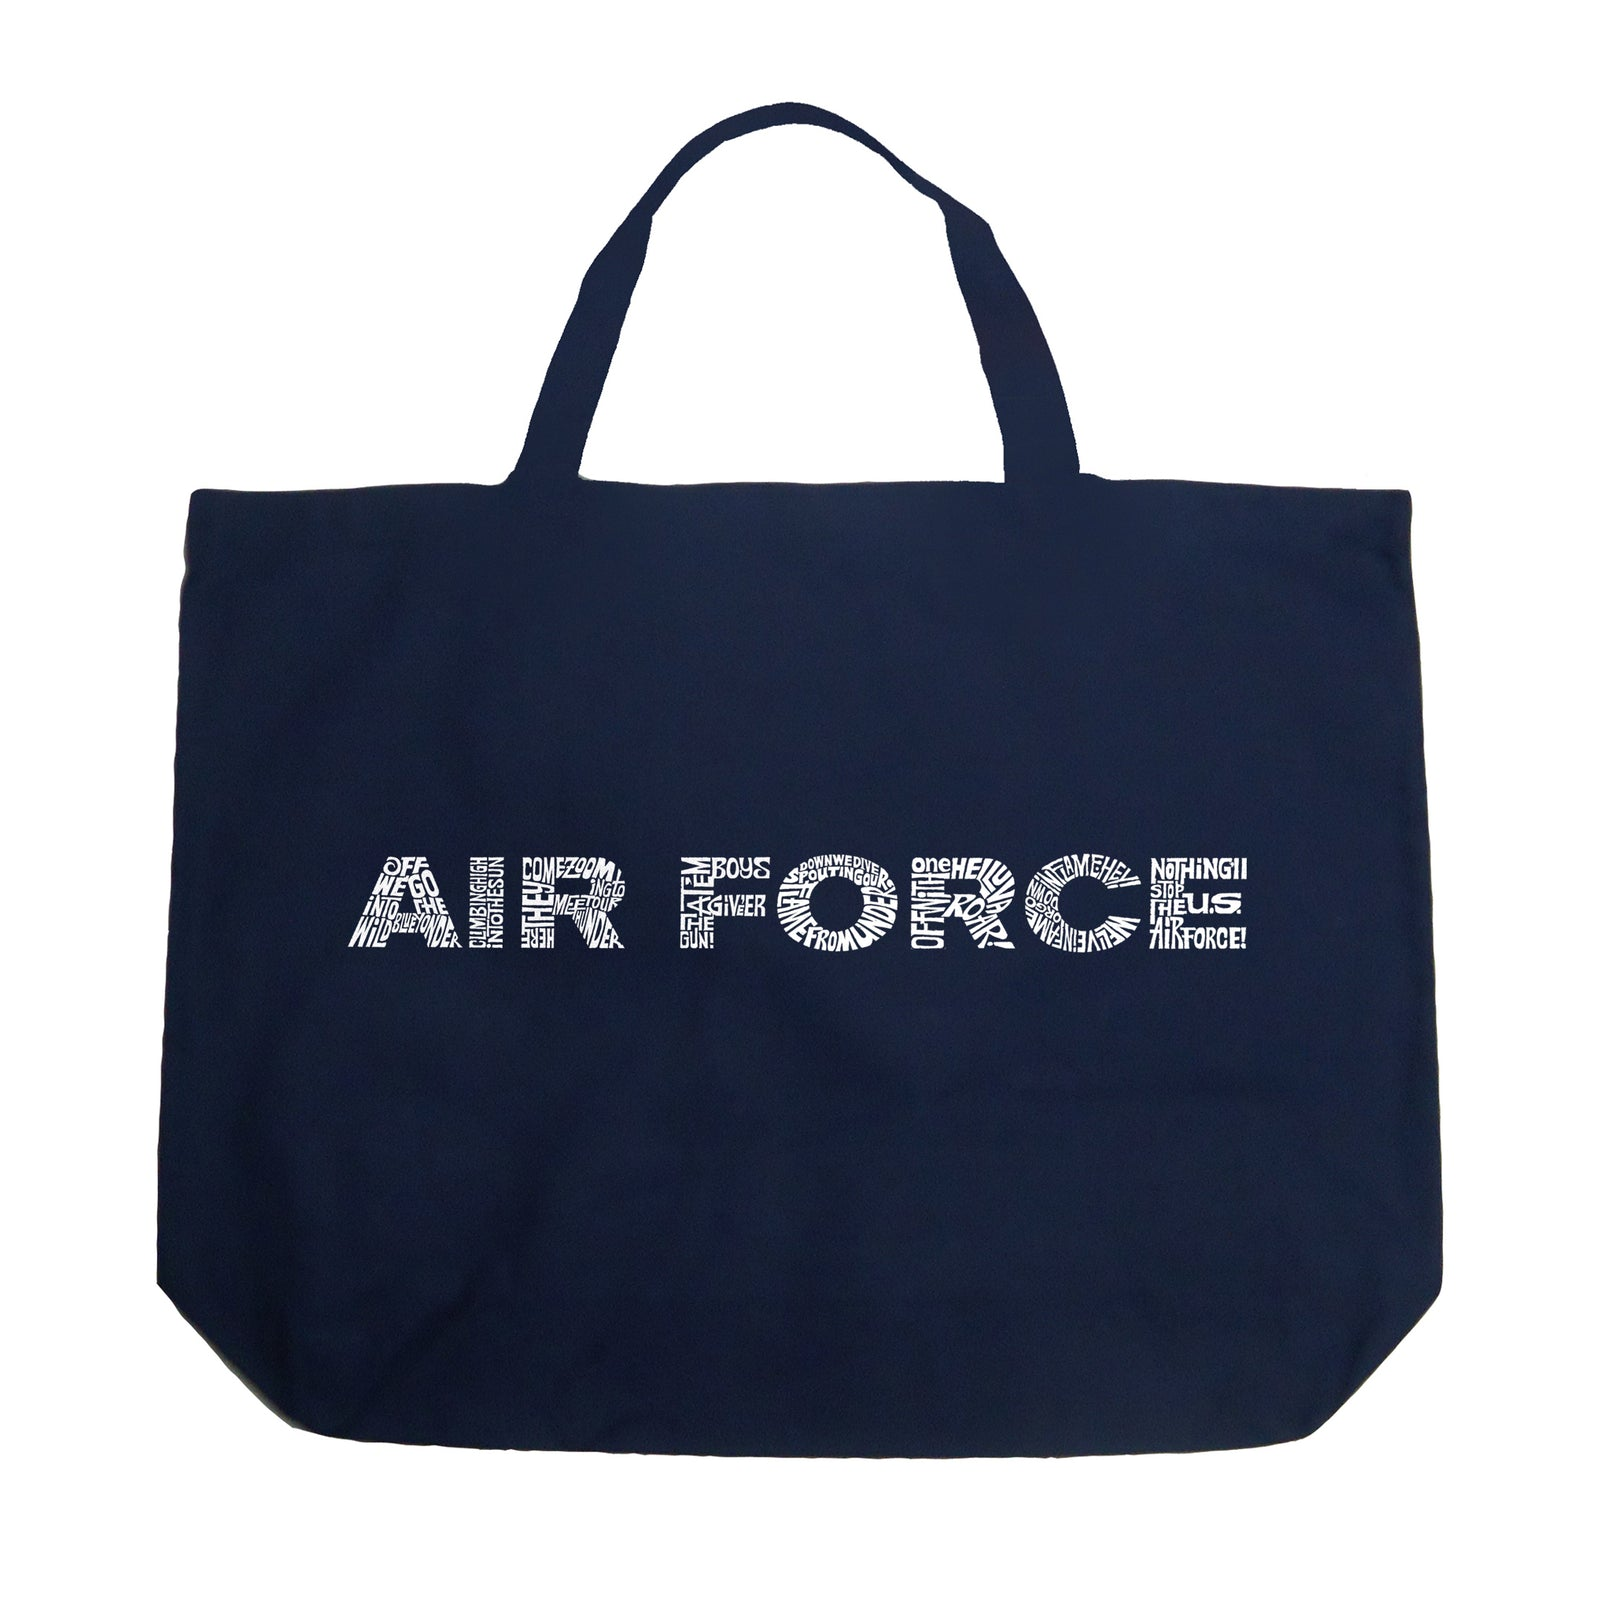 Large Tote Bag - Lyrics To The Air Force Song